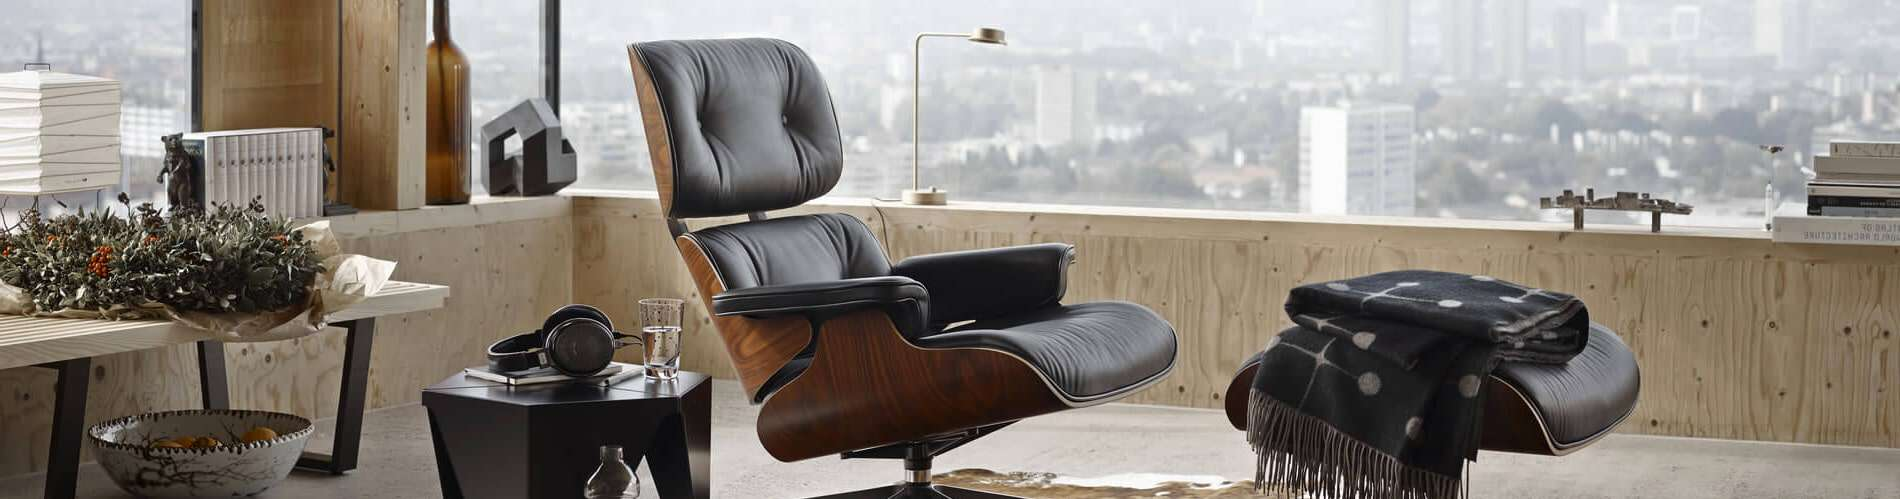 Enjoyable Buy Eames Lounge Chair Premium Reproduction At Bybespoek Bralicious Painted Fabric Chair Ideas Braliciousco